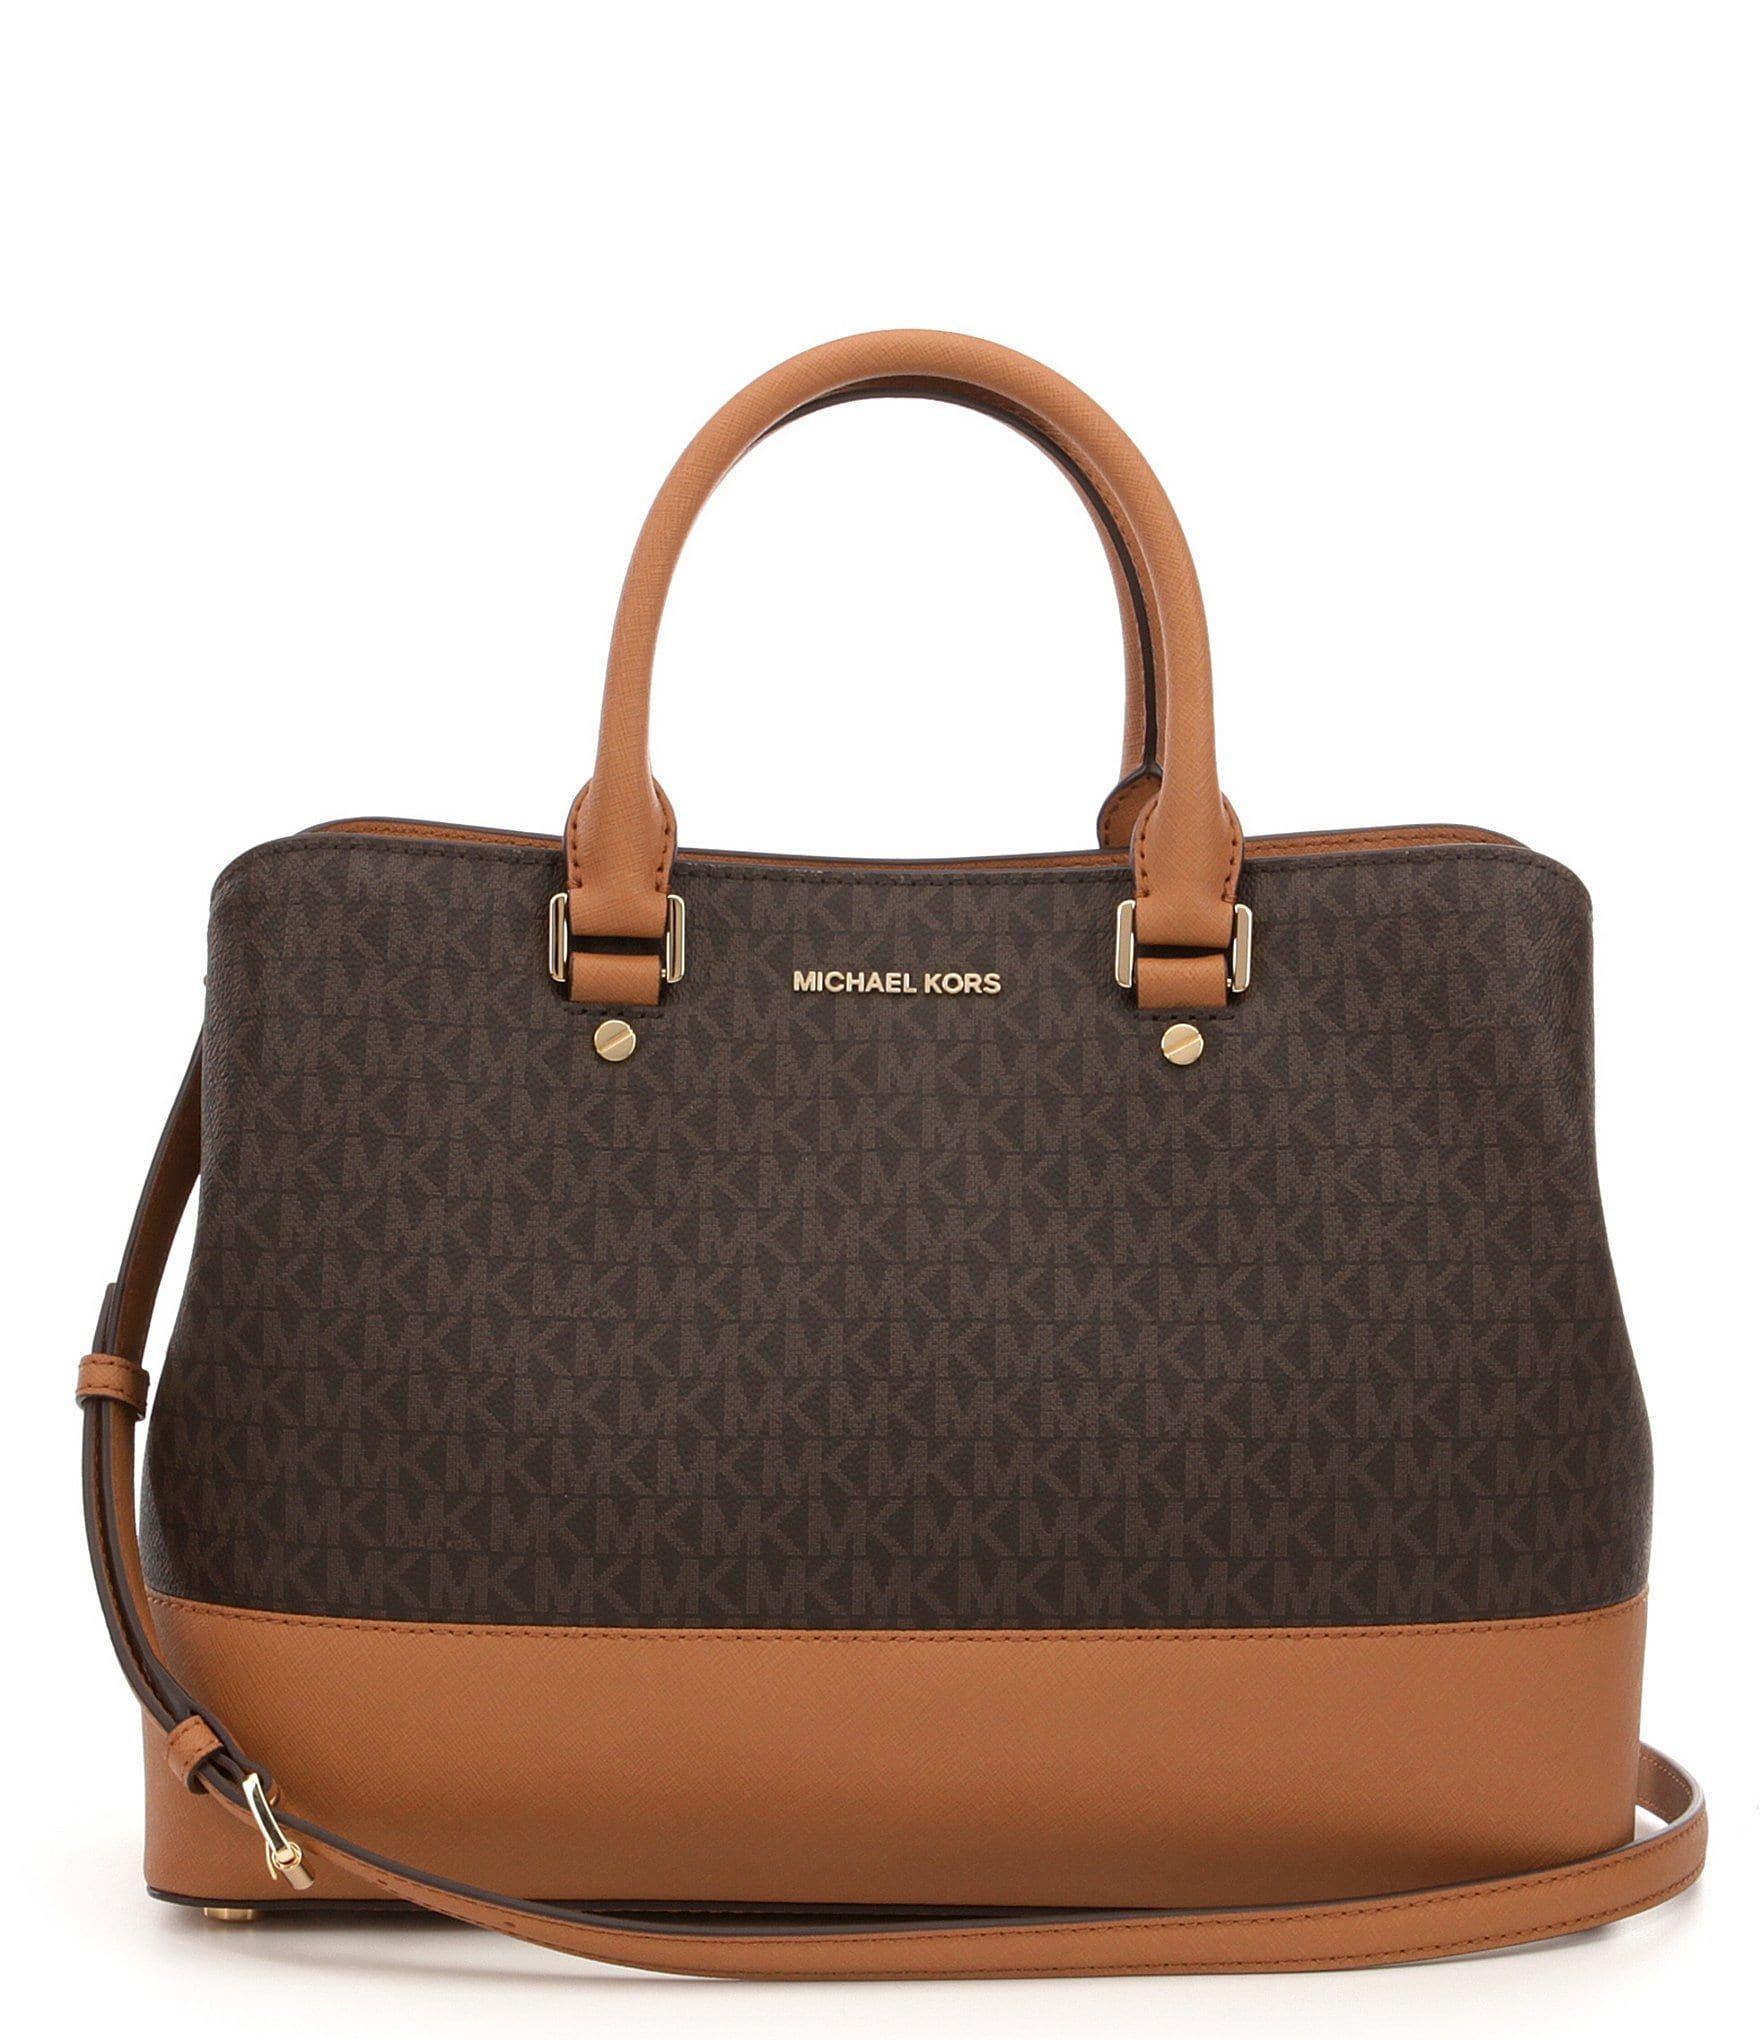 Find michael kors diaper bag at Macy's Macy's Presents: The Edit - A curated mix of fashion and inspiration Check It Out Free Shipping with $99 purchase + Free Store Pickup.